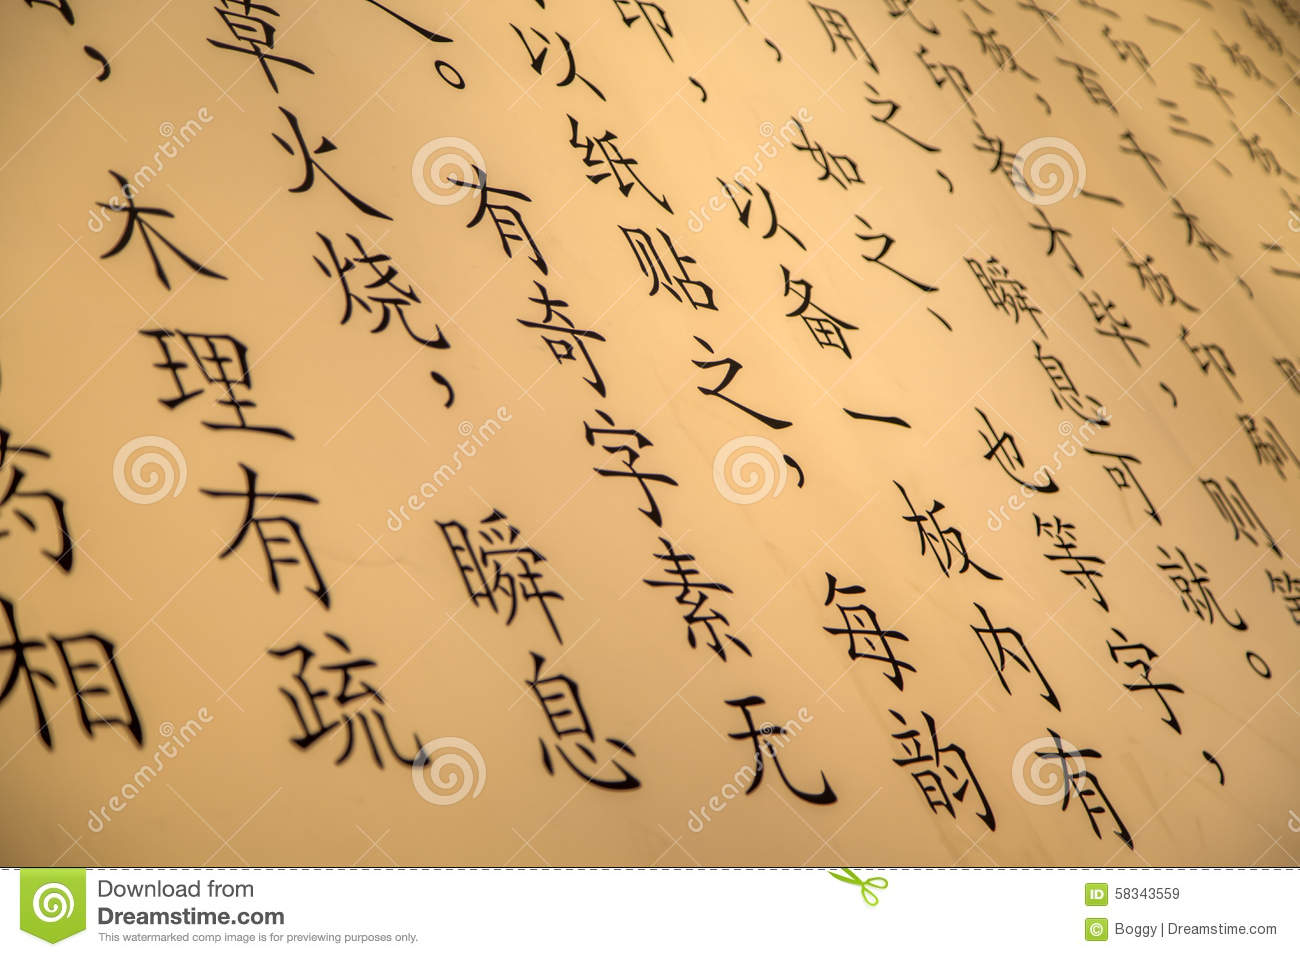 Lettre chinoise image stock image du caract re asie - Lettre chinoise alphabet ...